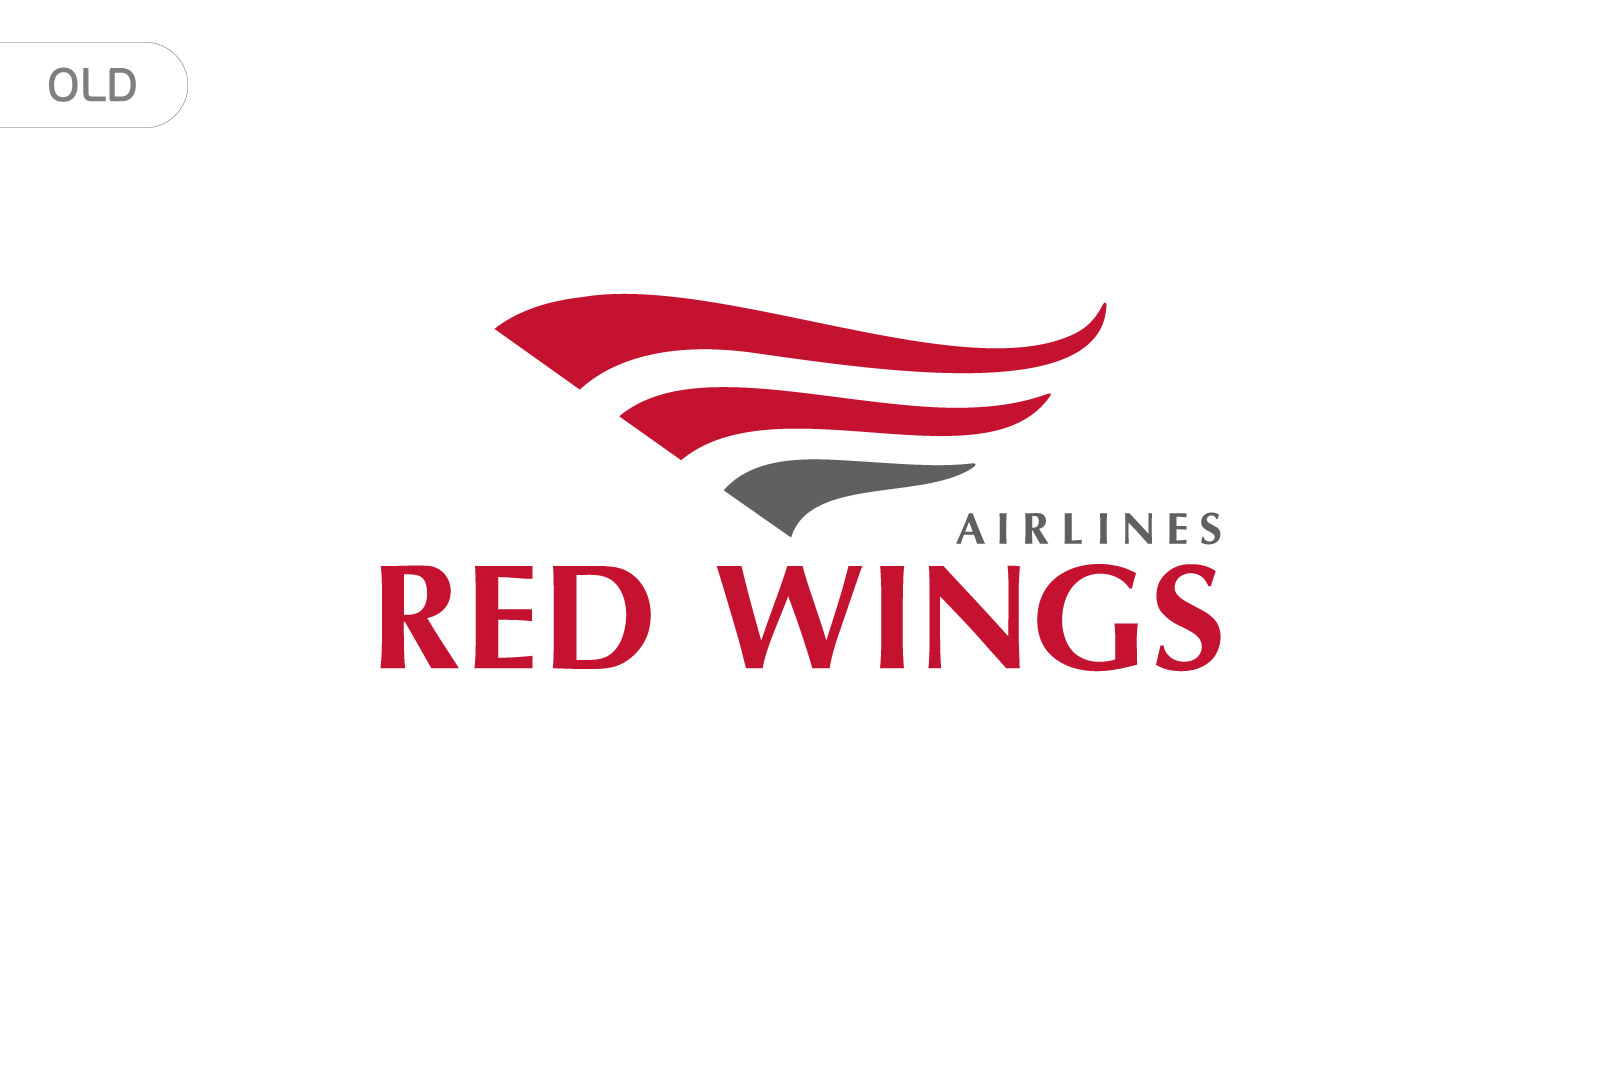 old logo, red wings airlines